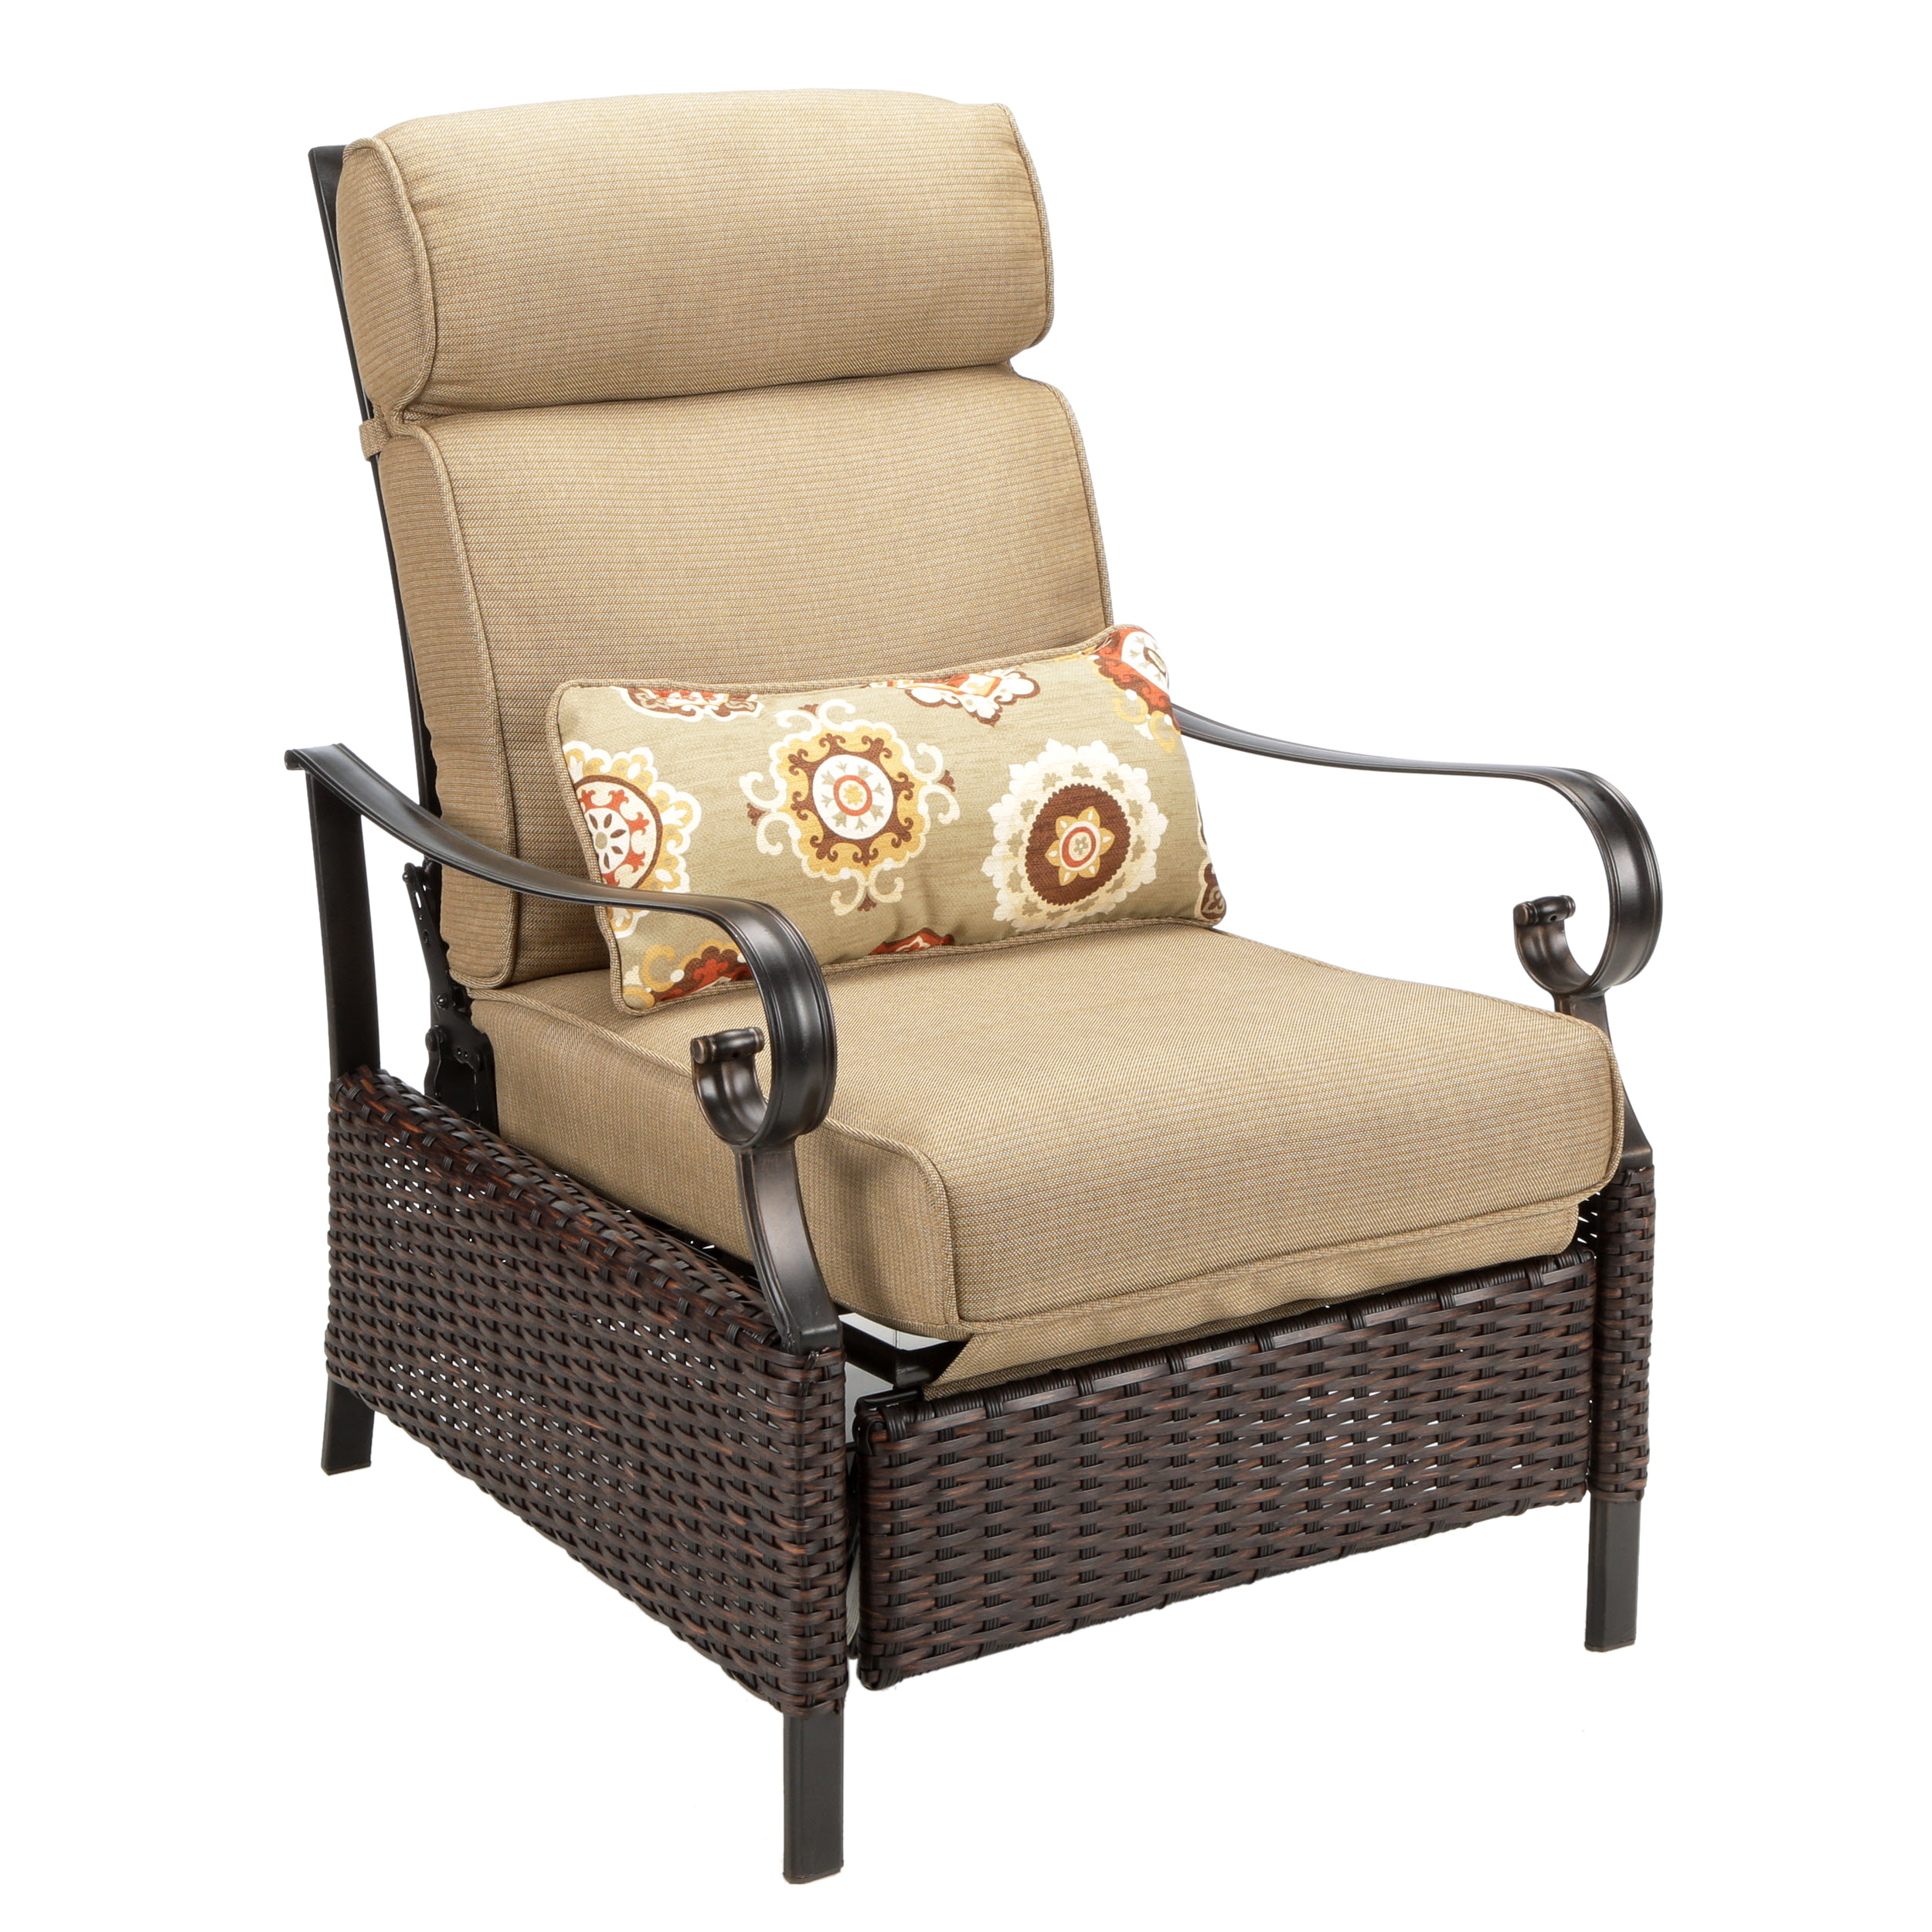 Outdoor Recliner Chair Tan Padded Cushion All Weather Wicker Patio